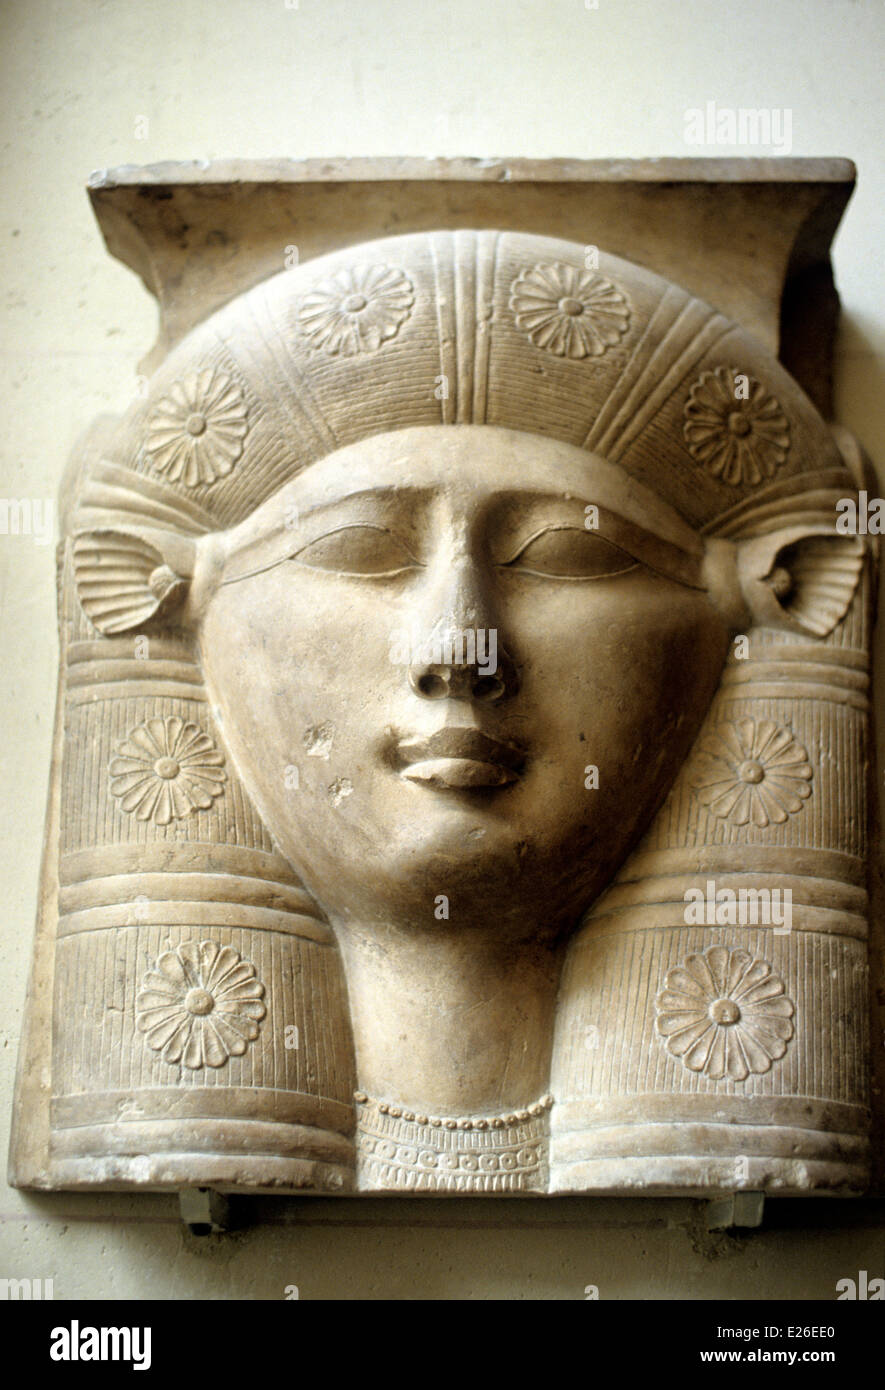 Egyptian art,the goddess hathor depicted with veal ears,3rd century BC,fragment of capital,louvre,paris - Stock Image